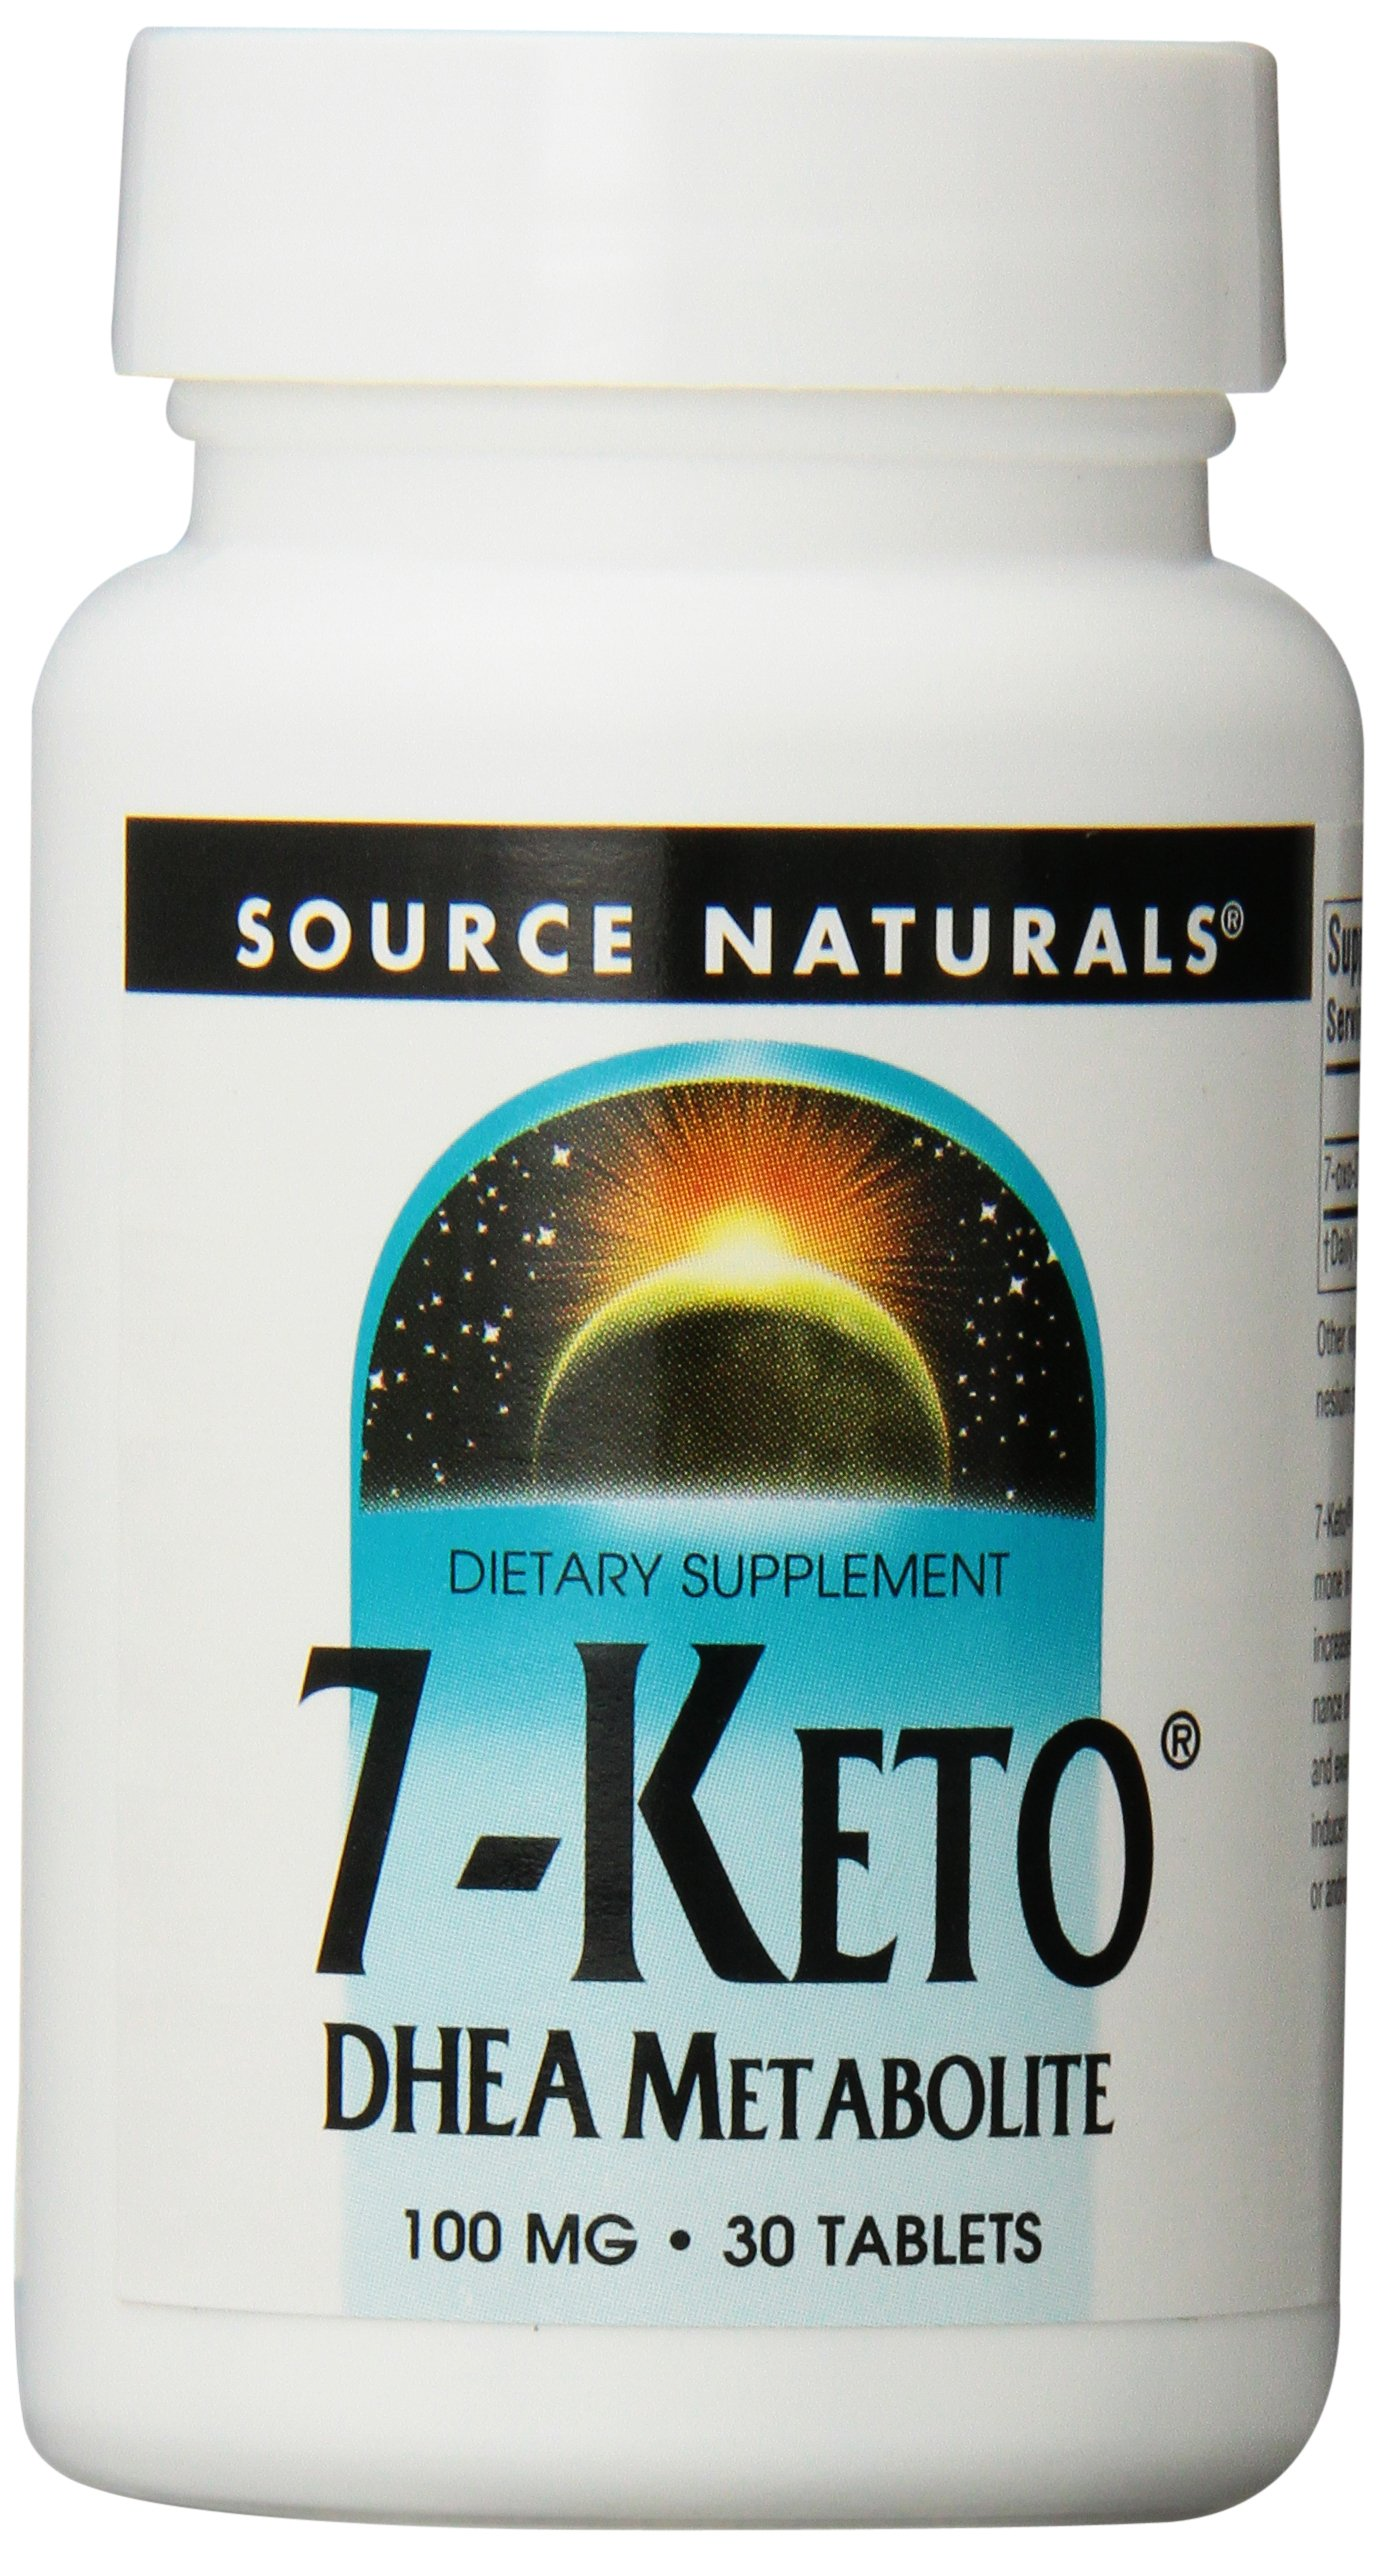 Source Naturals 7-Keto DHEA Metabolite 100mg, Effective Anti-Aging Compound, 30 Tablets